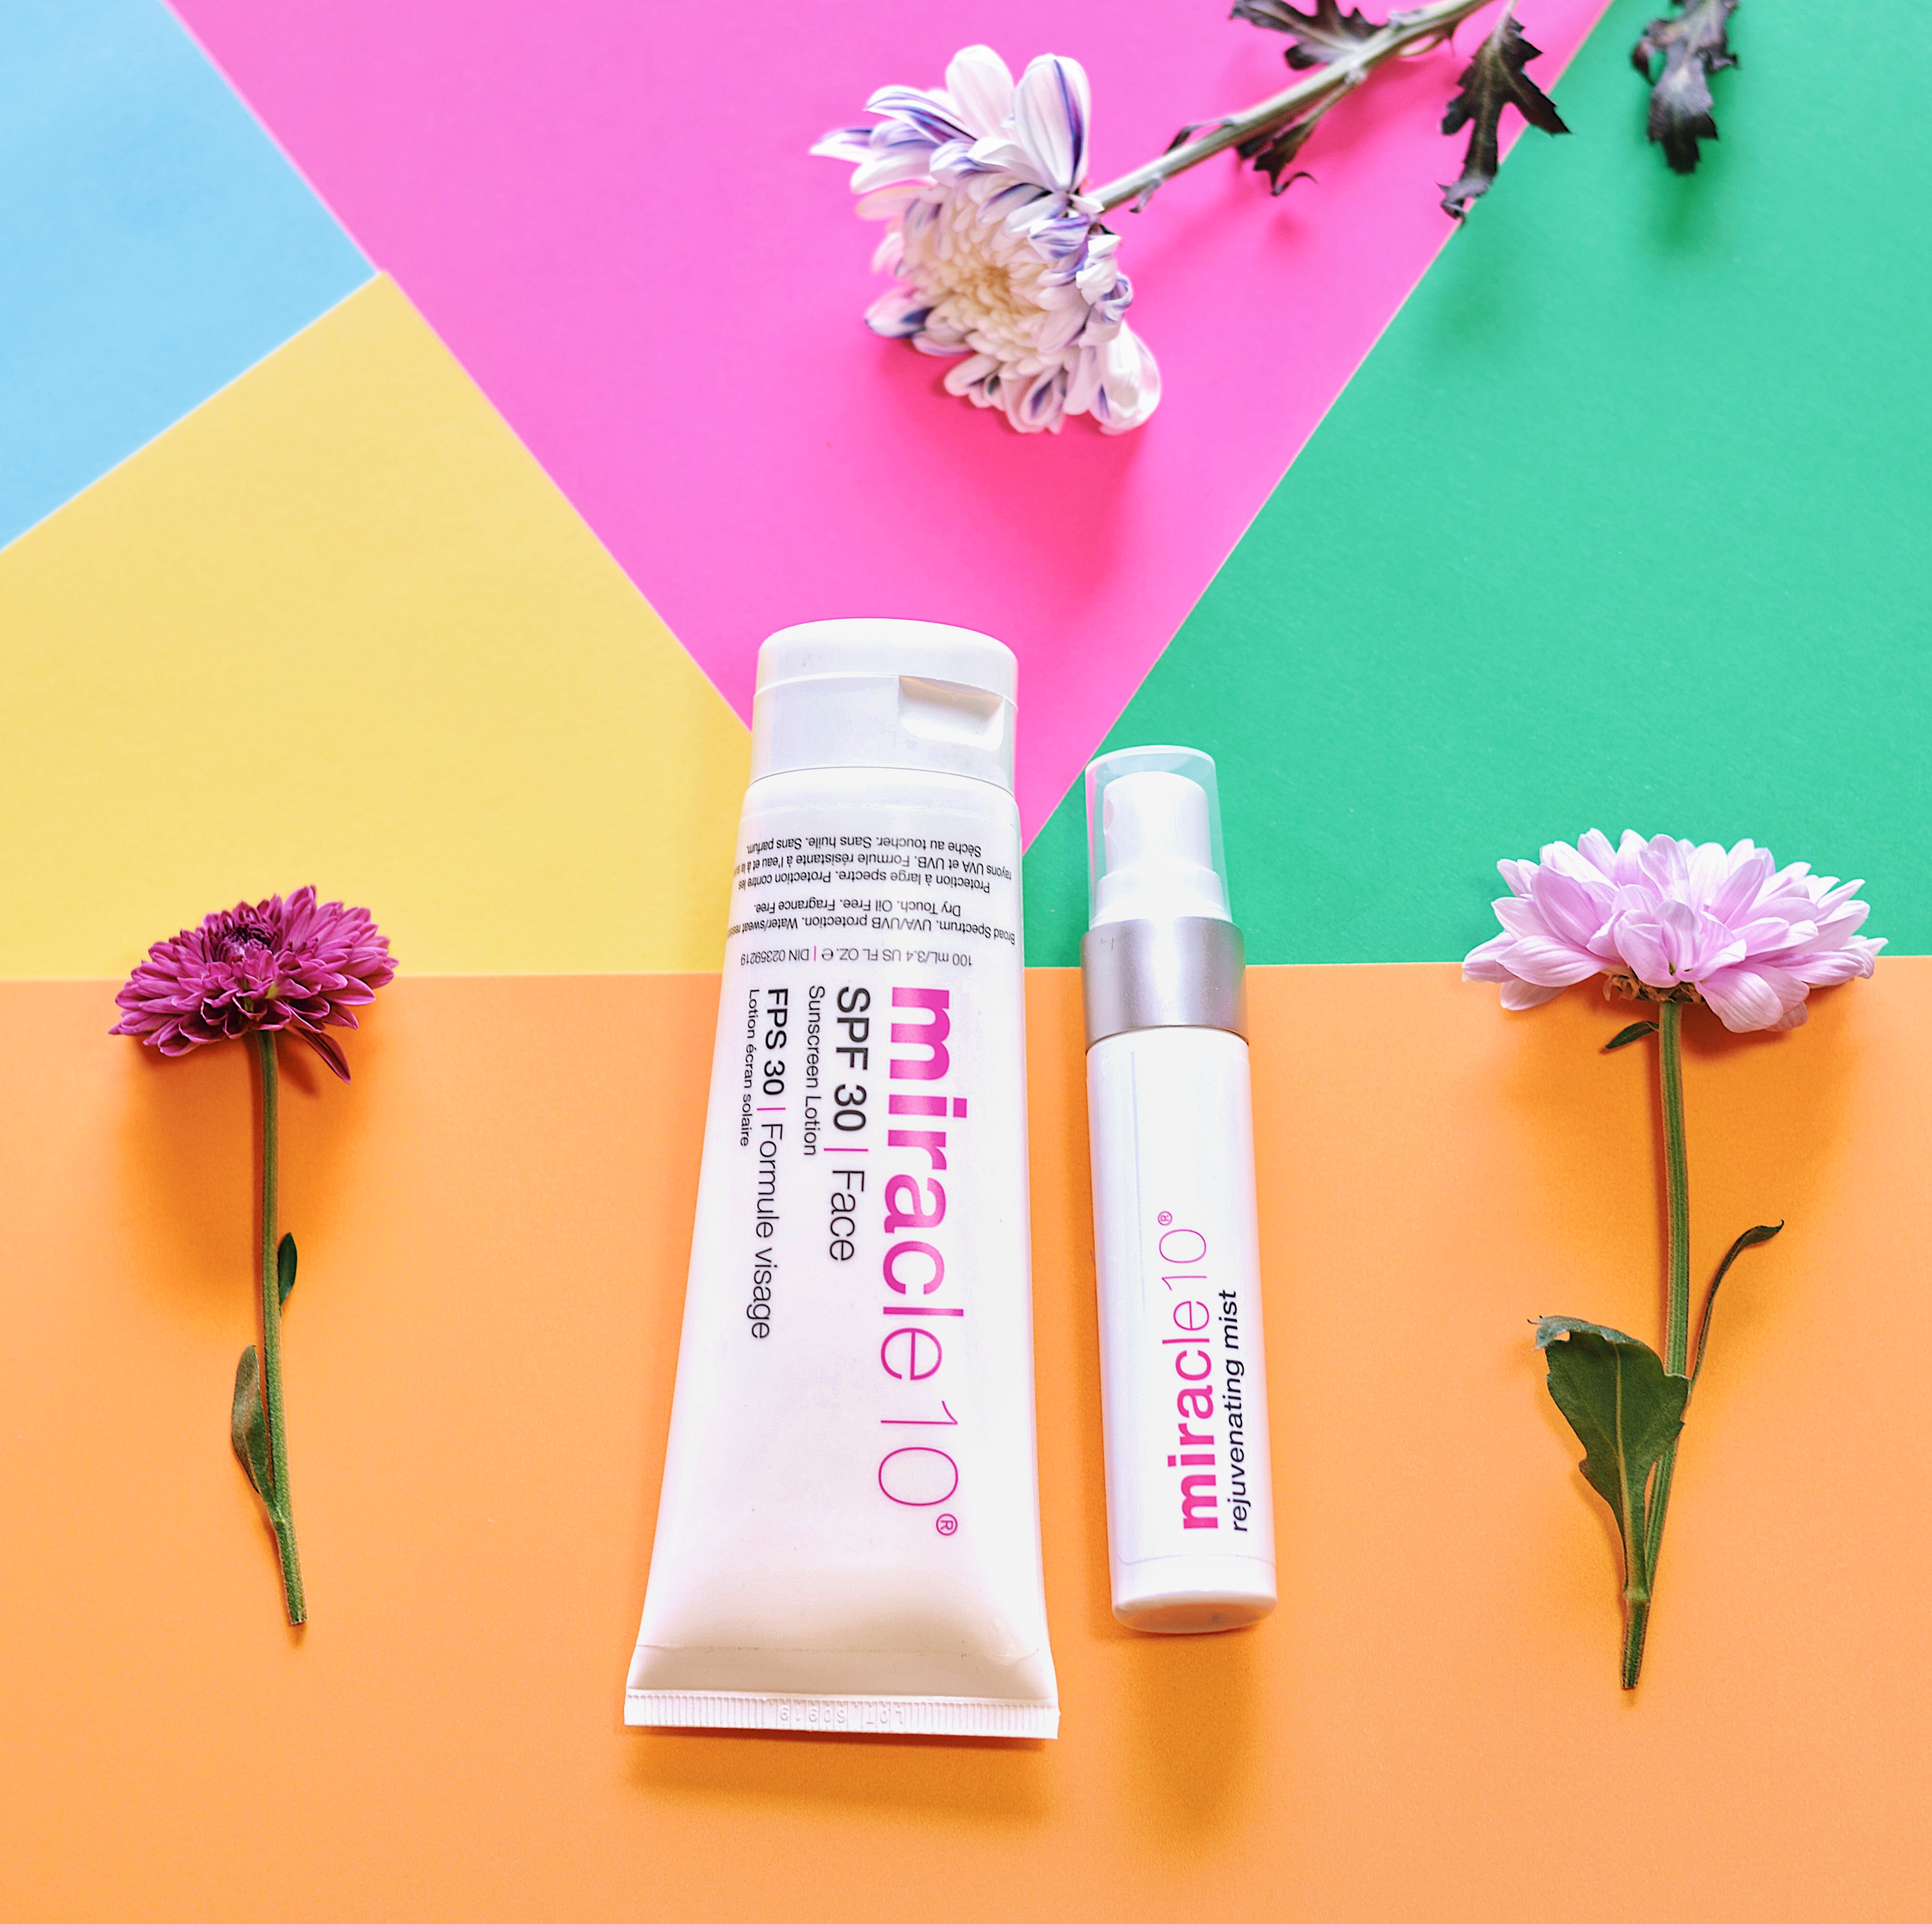 Miracle 10 Skincare - Your key to healthy glowing skin